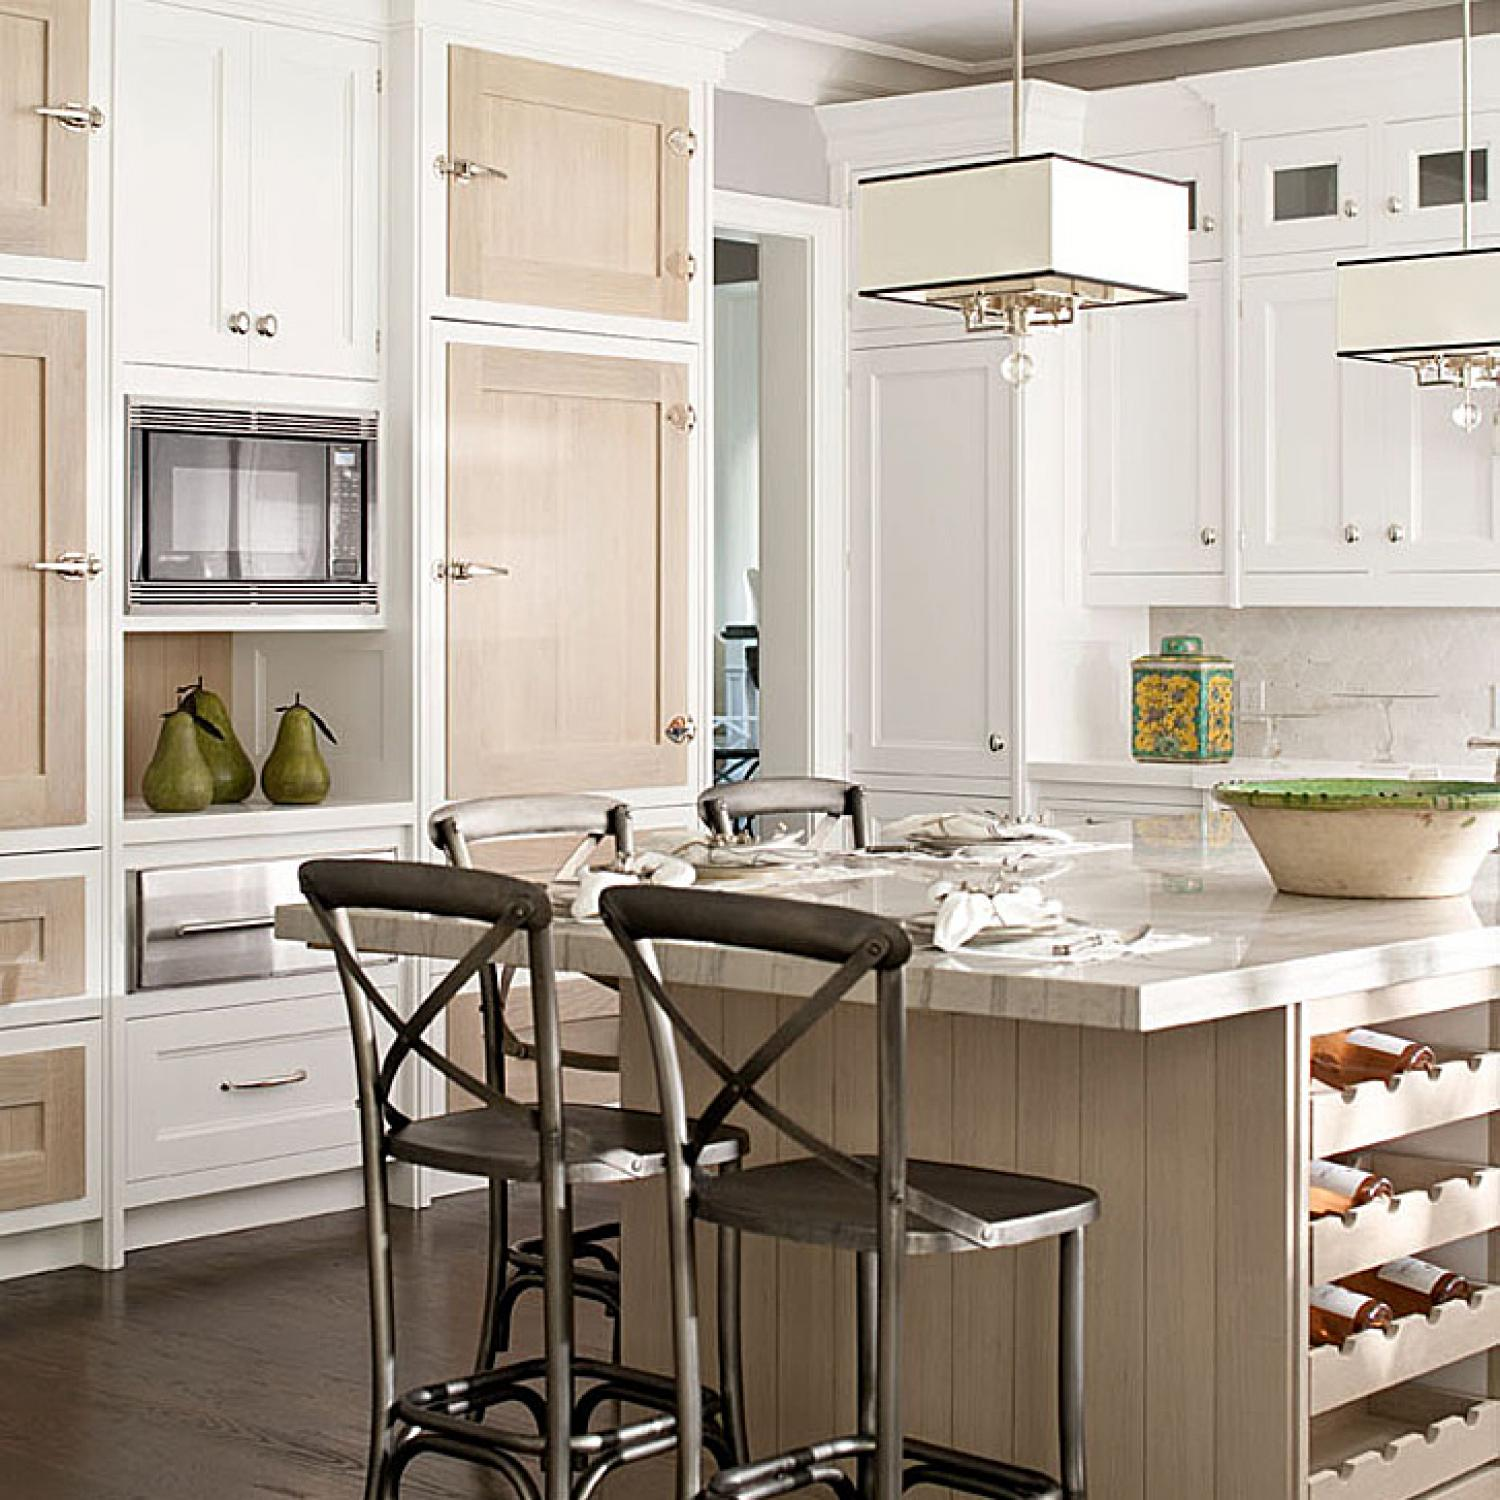 & Showhouse Kitchen with Great Use of Texture | Traditional Home islam-shia.org